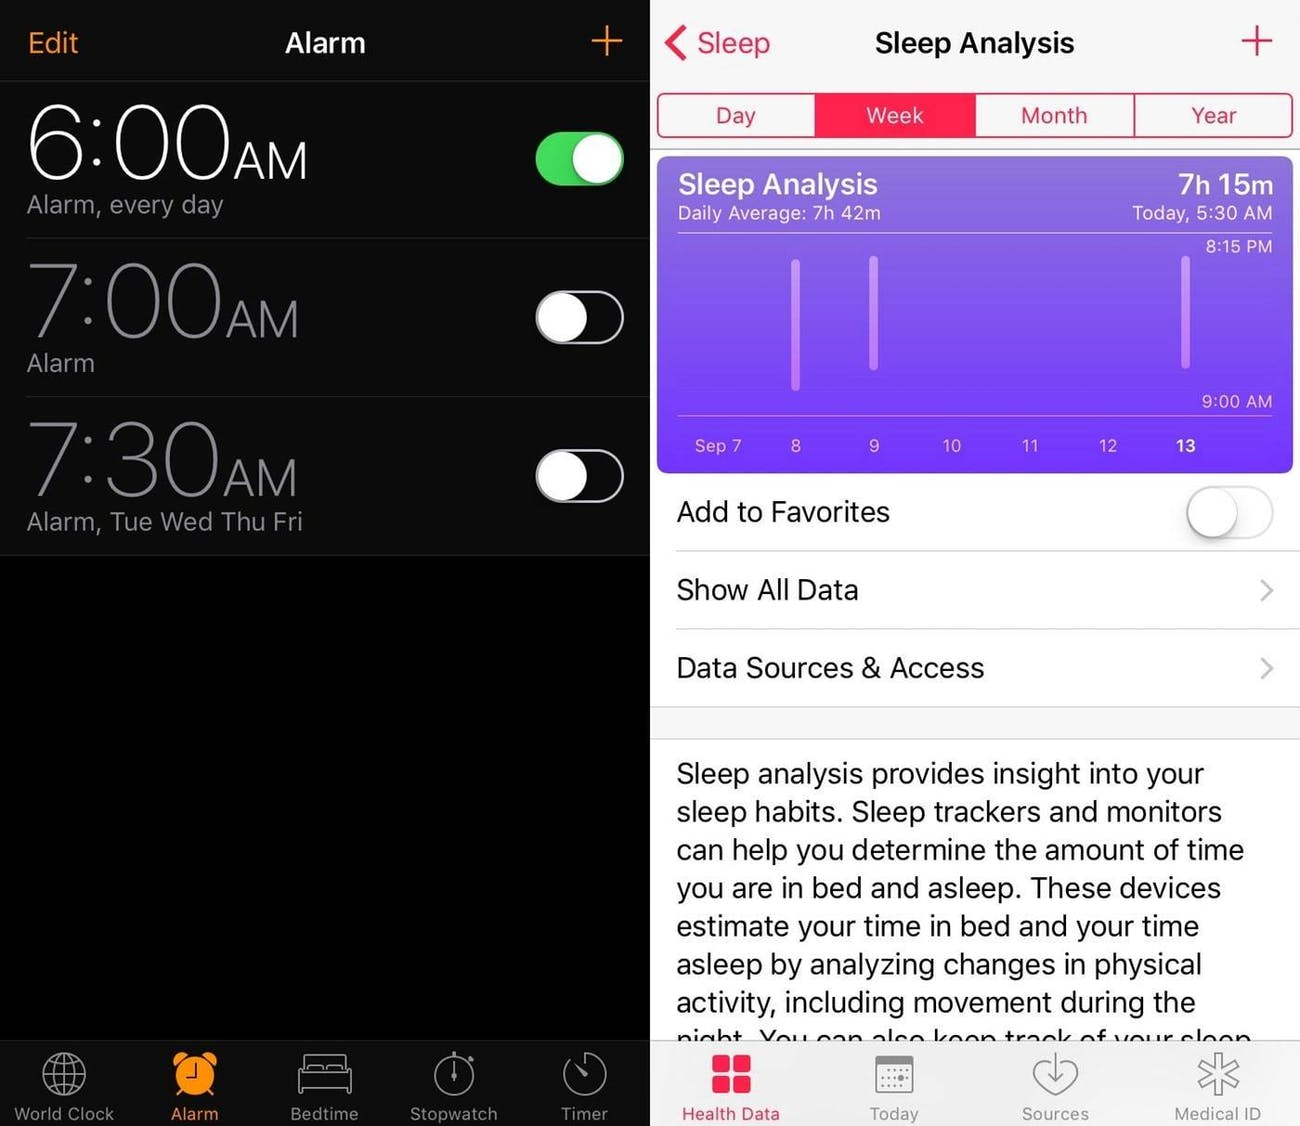 Screenshots explain how the Bedtime feature in iOS 10 works.